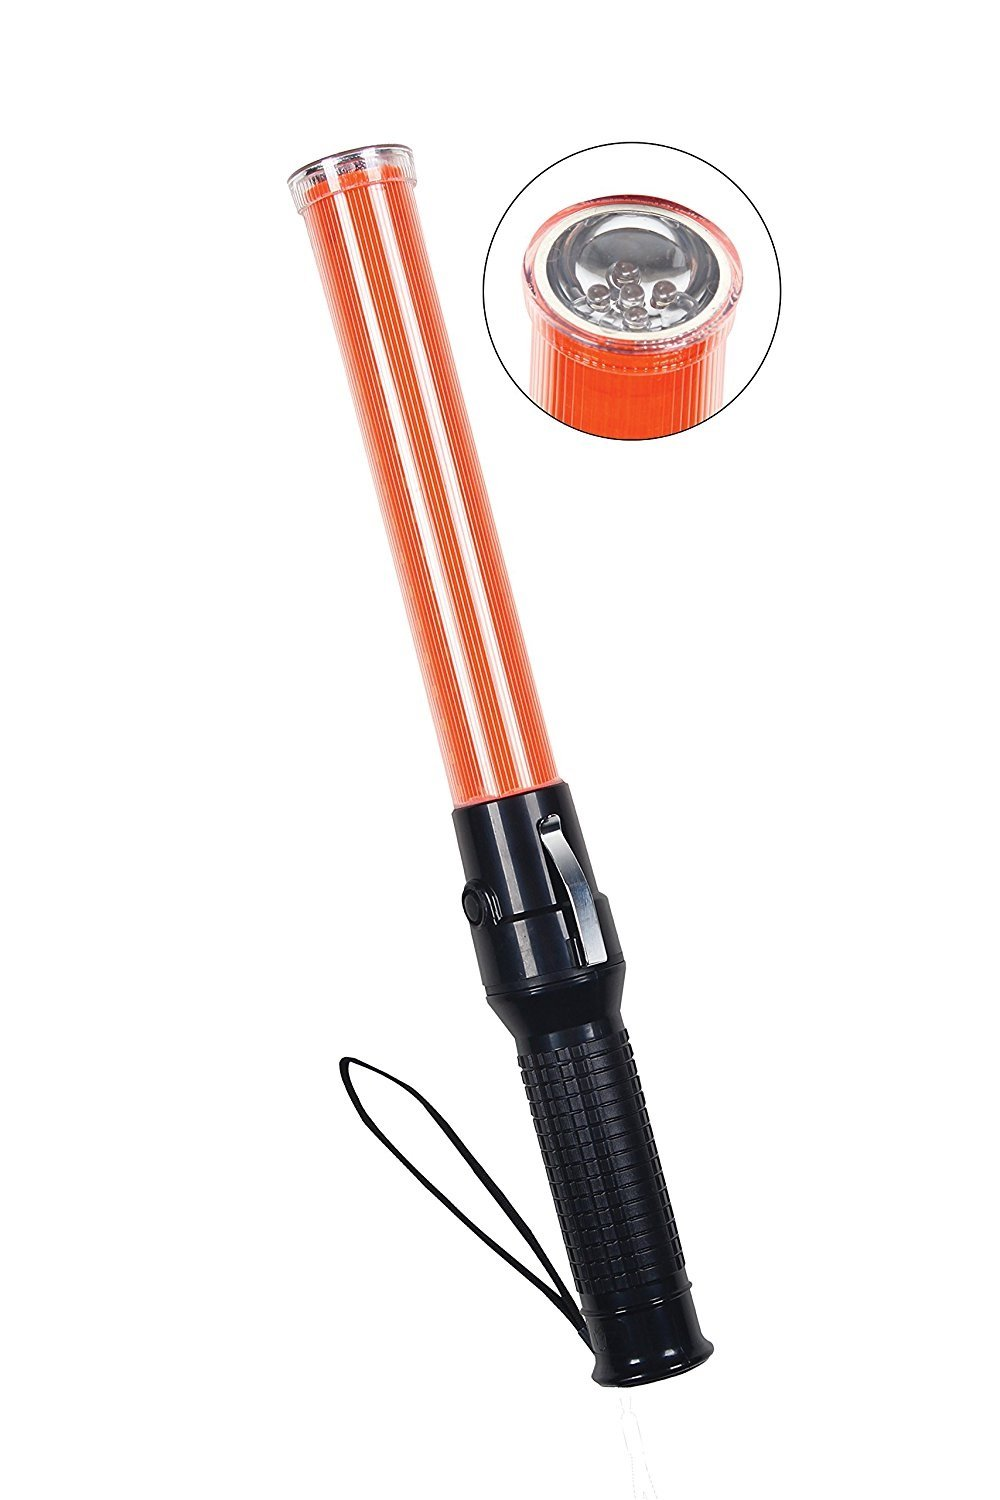 Safety Depot 17.5-inch 6-Red LED, Strong Magnetic Base with Enhance Grip Handle and Side Clip Used for Marshalling and Traffic Wands Set to Flashing, Steady or White 5-LED Flashlight Ba16